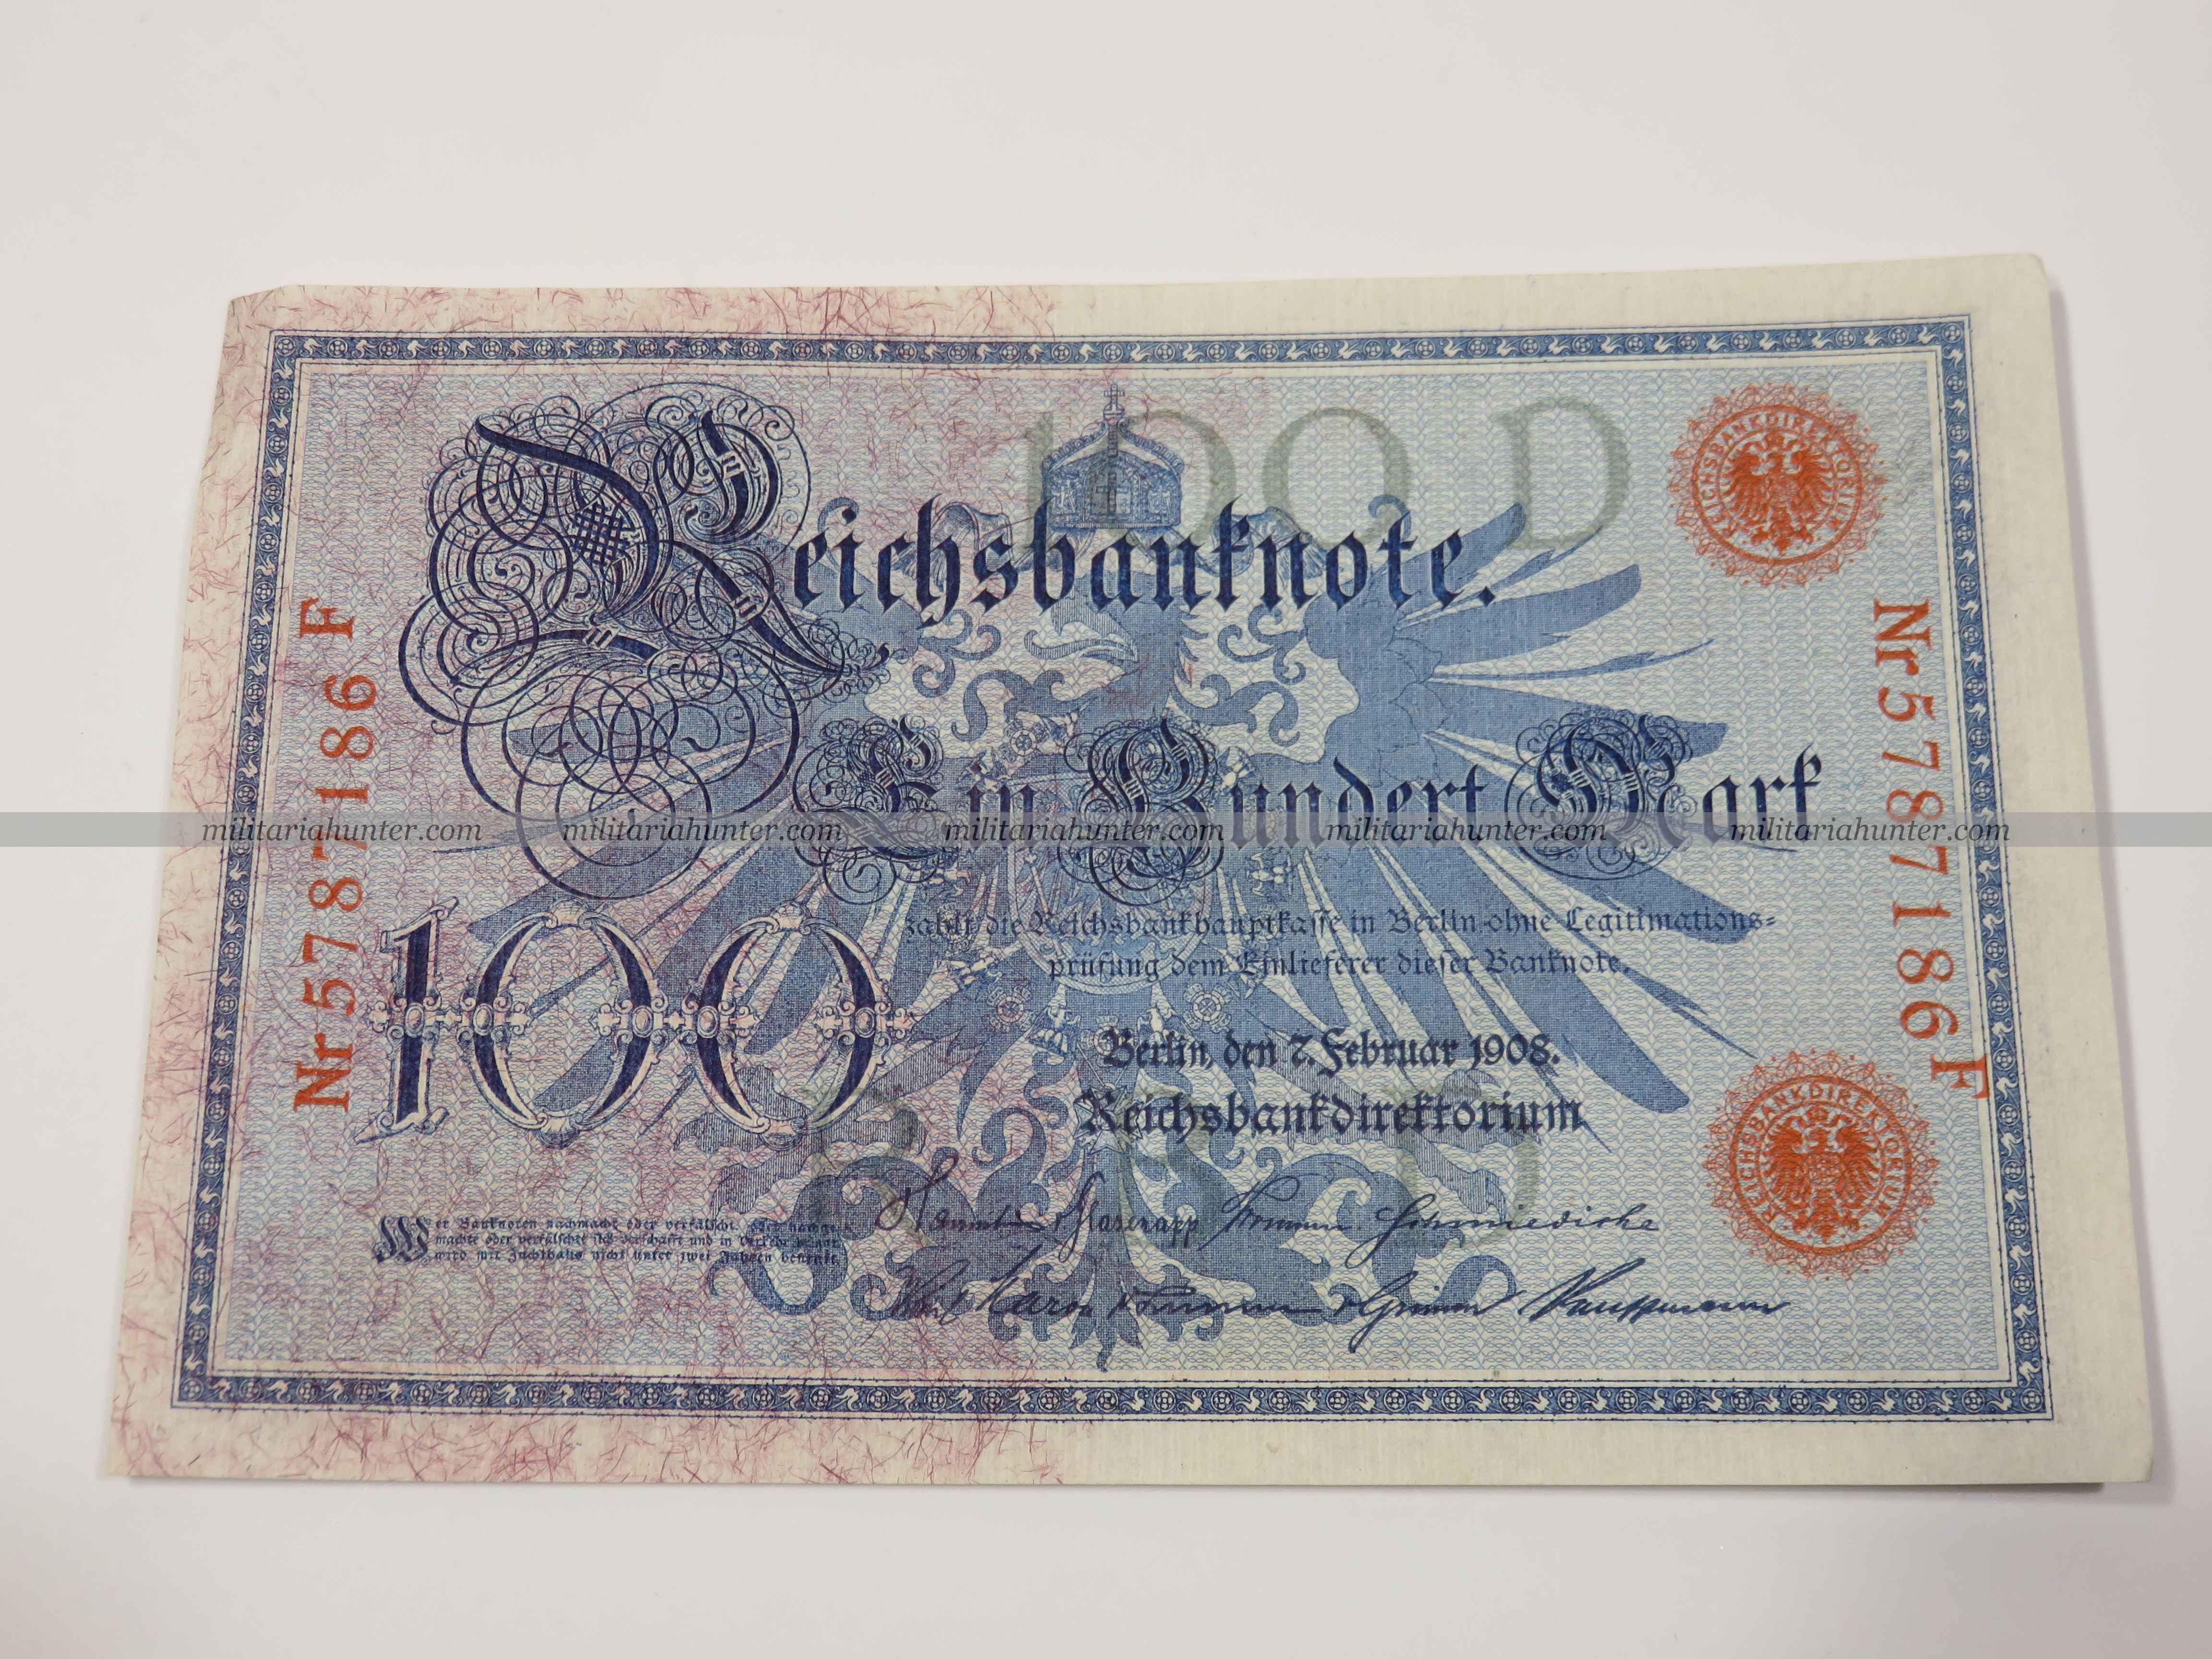 militaria : ww1 german banknote 100 Mark 1908 - billet allemand ww1 de 100 Mark